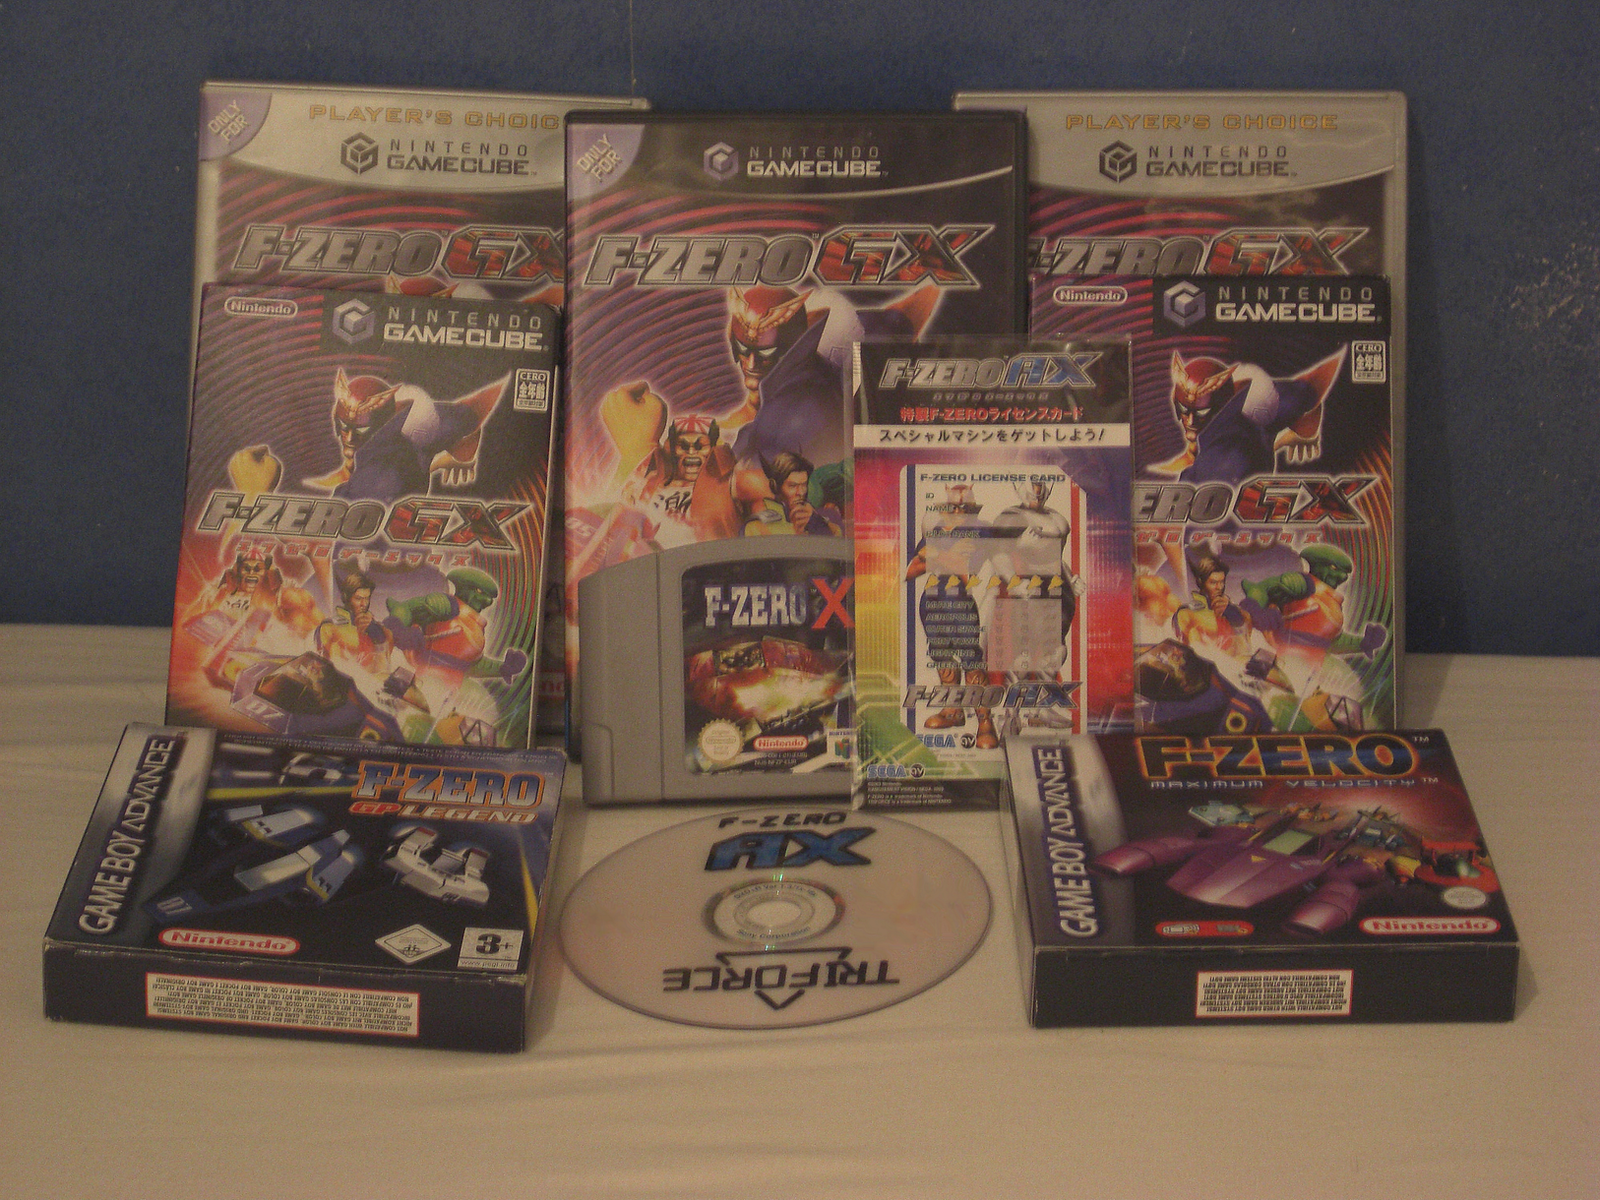 F-zero collection by PortableNetworkGraph